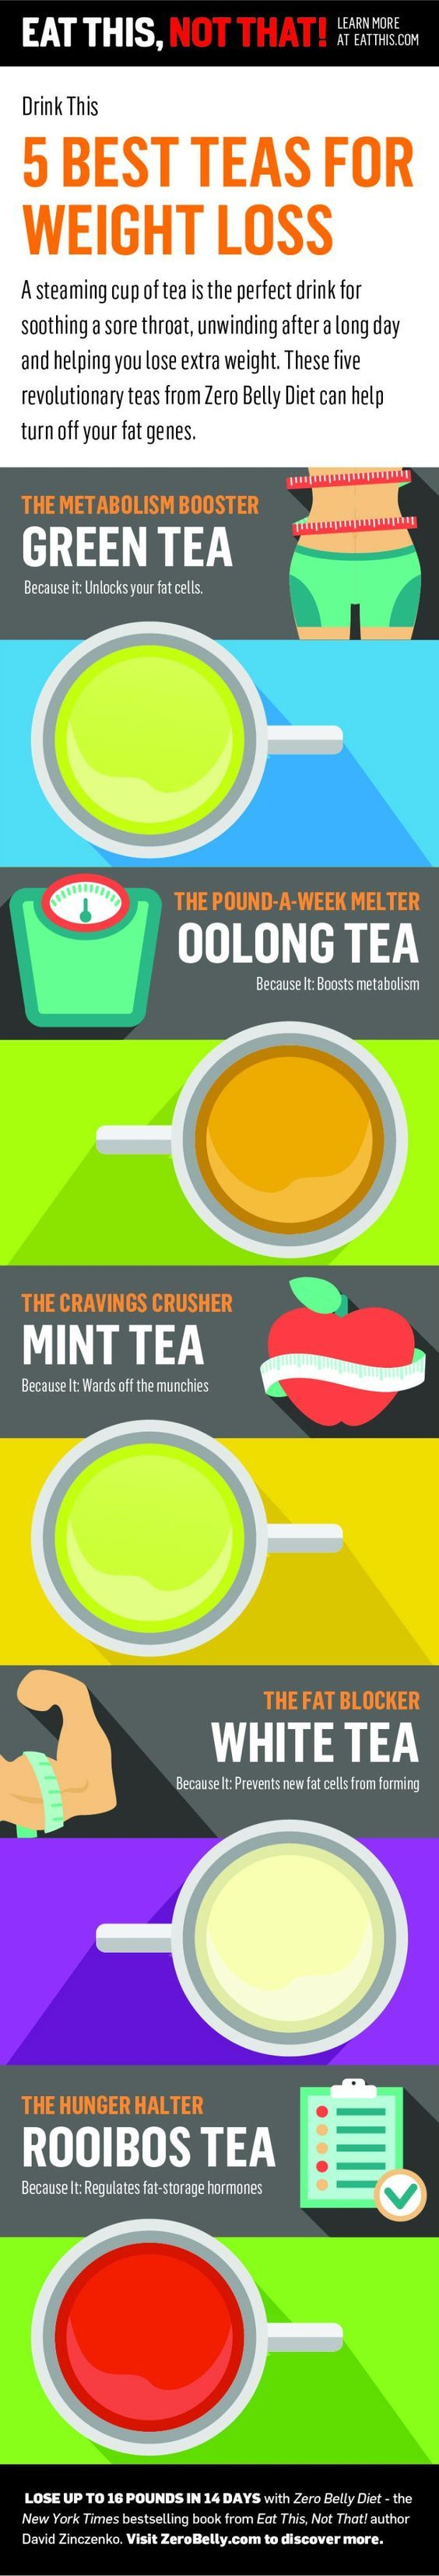 A good cup of hot tea is perfect for cold nights and a sore throat. It is also good for helping you lose weight.  - http://upcominghealth.com/these-are-the-5-best-teas-for-weight-loss-2/